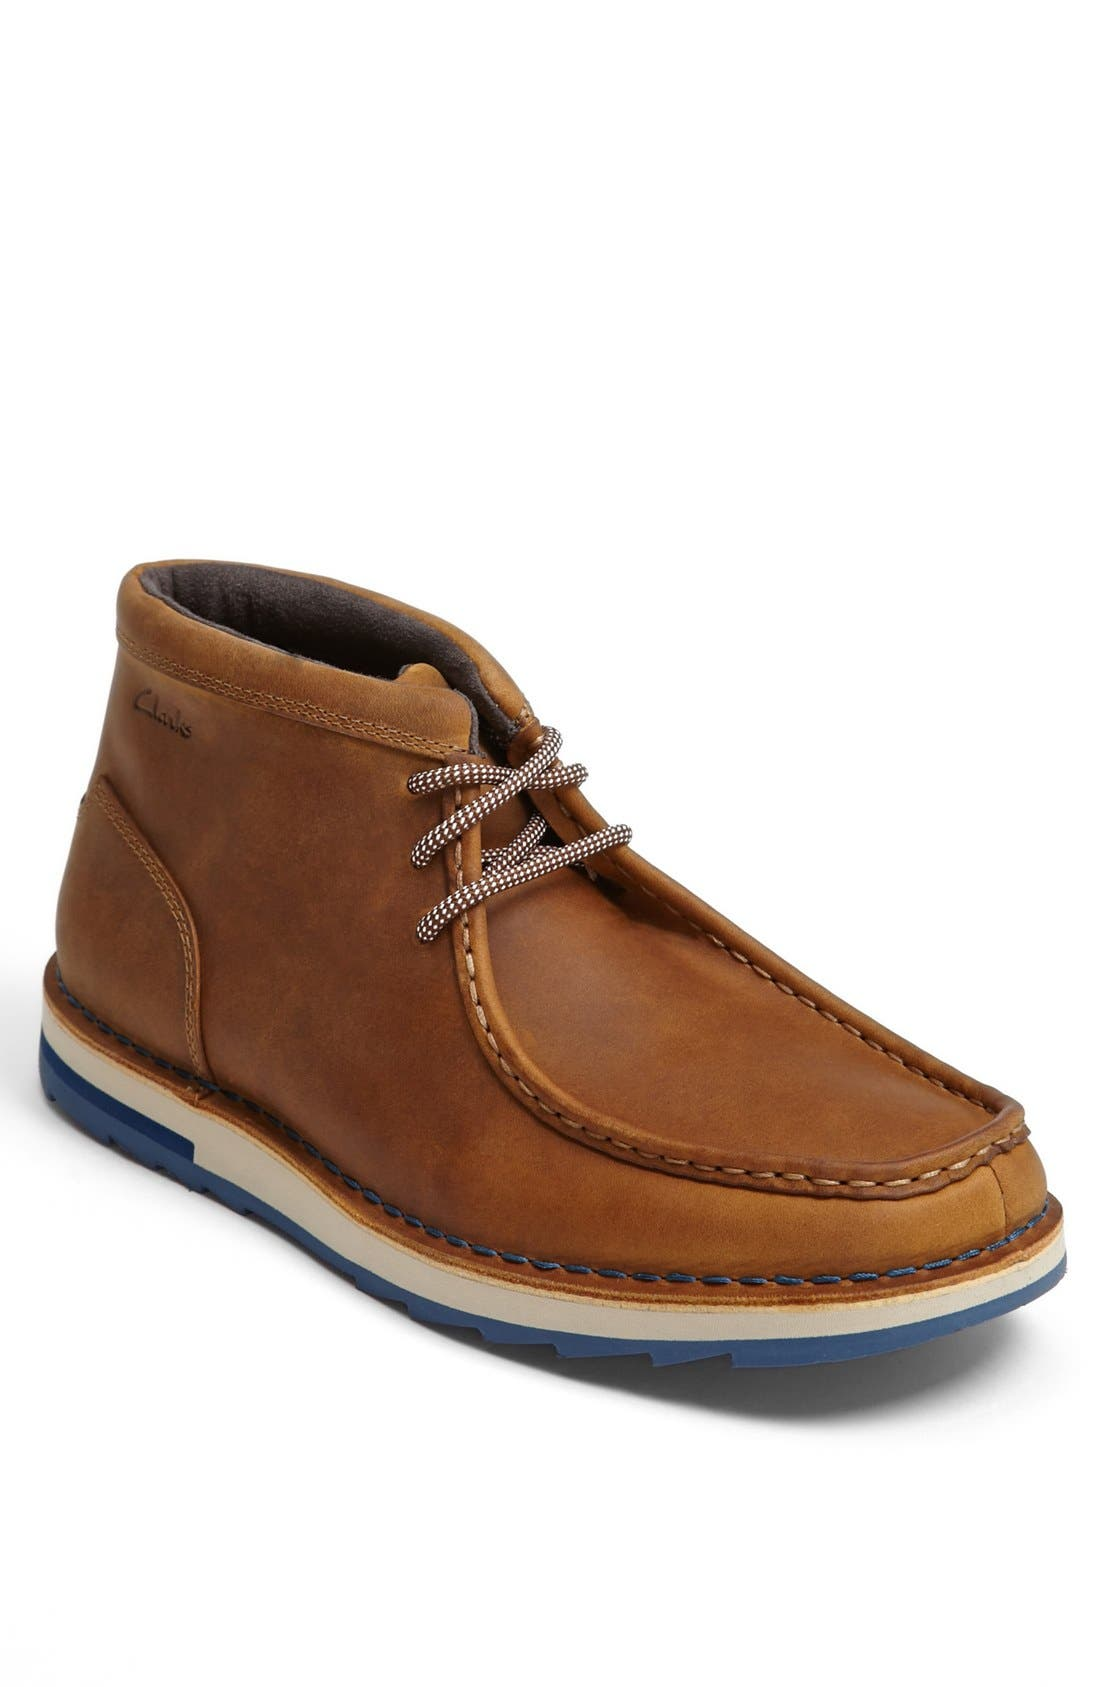 Alternate Image 1 Selected - Clarks® 'Folk' Moc Toe Chukka Boot